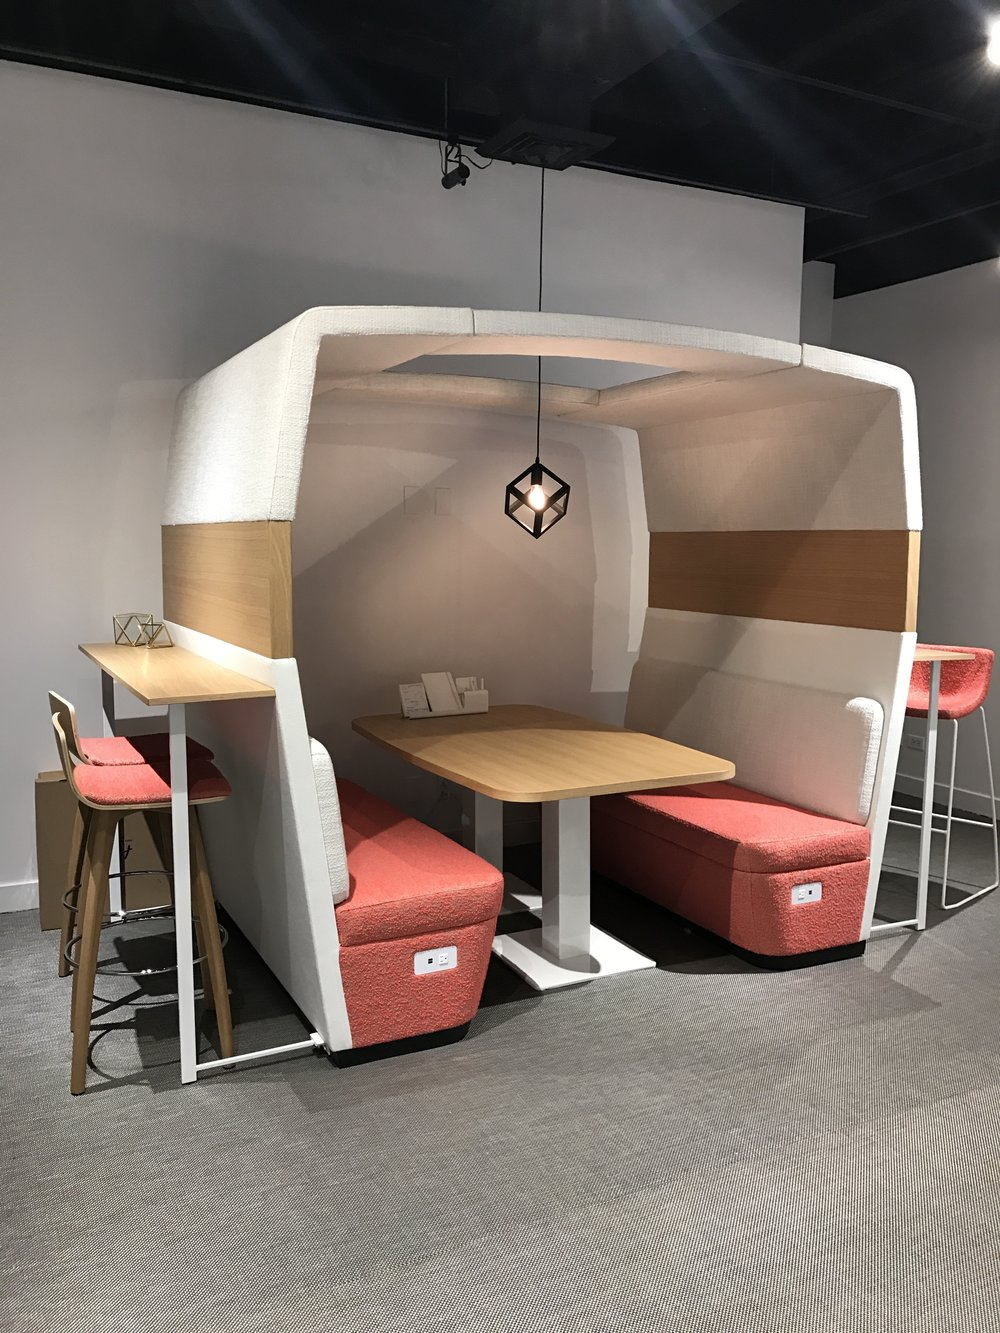 Shopping at  Neocon! PRivacy booth with sound clouds and optional bar height wings